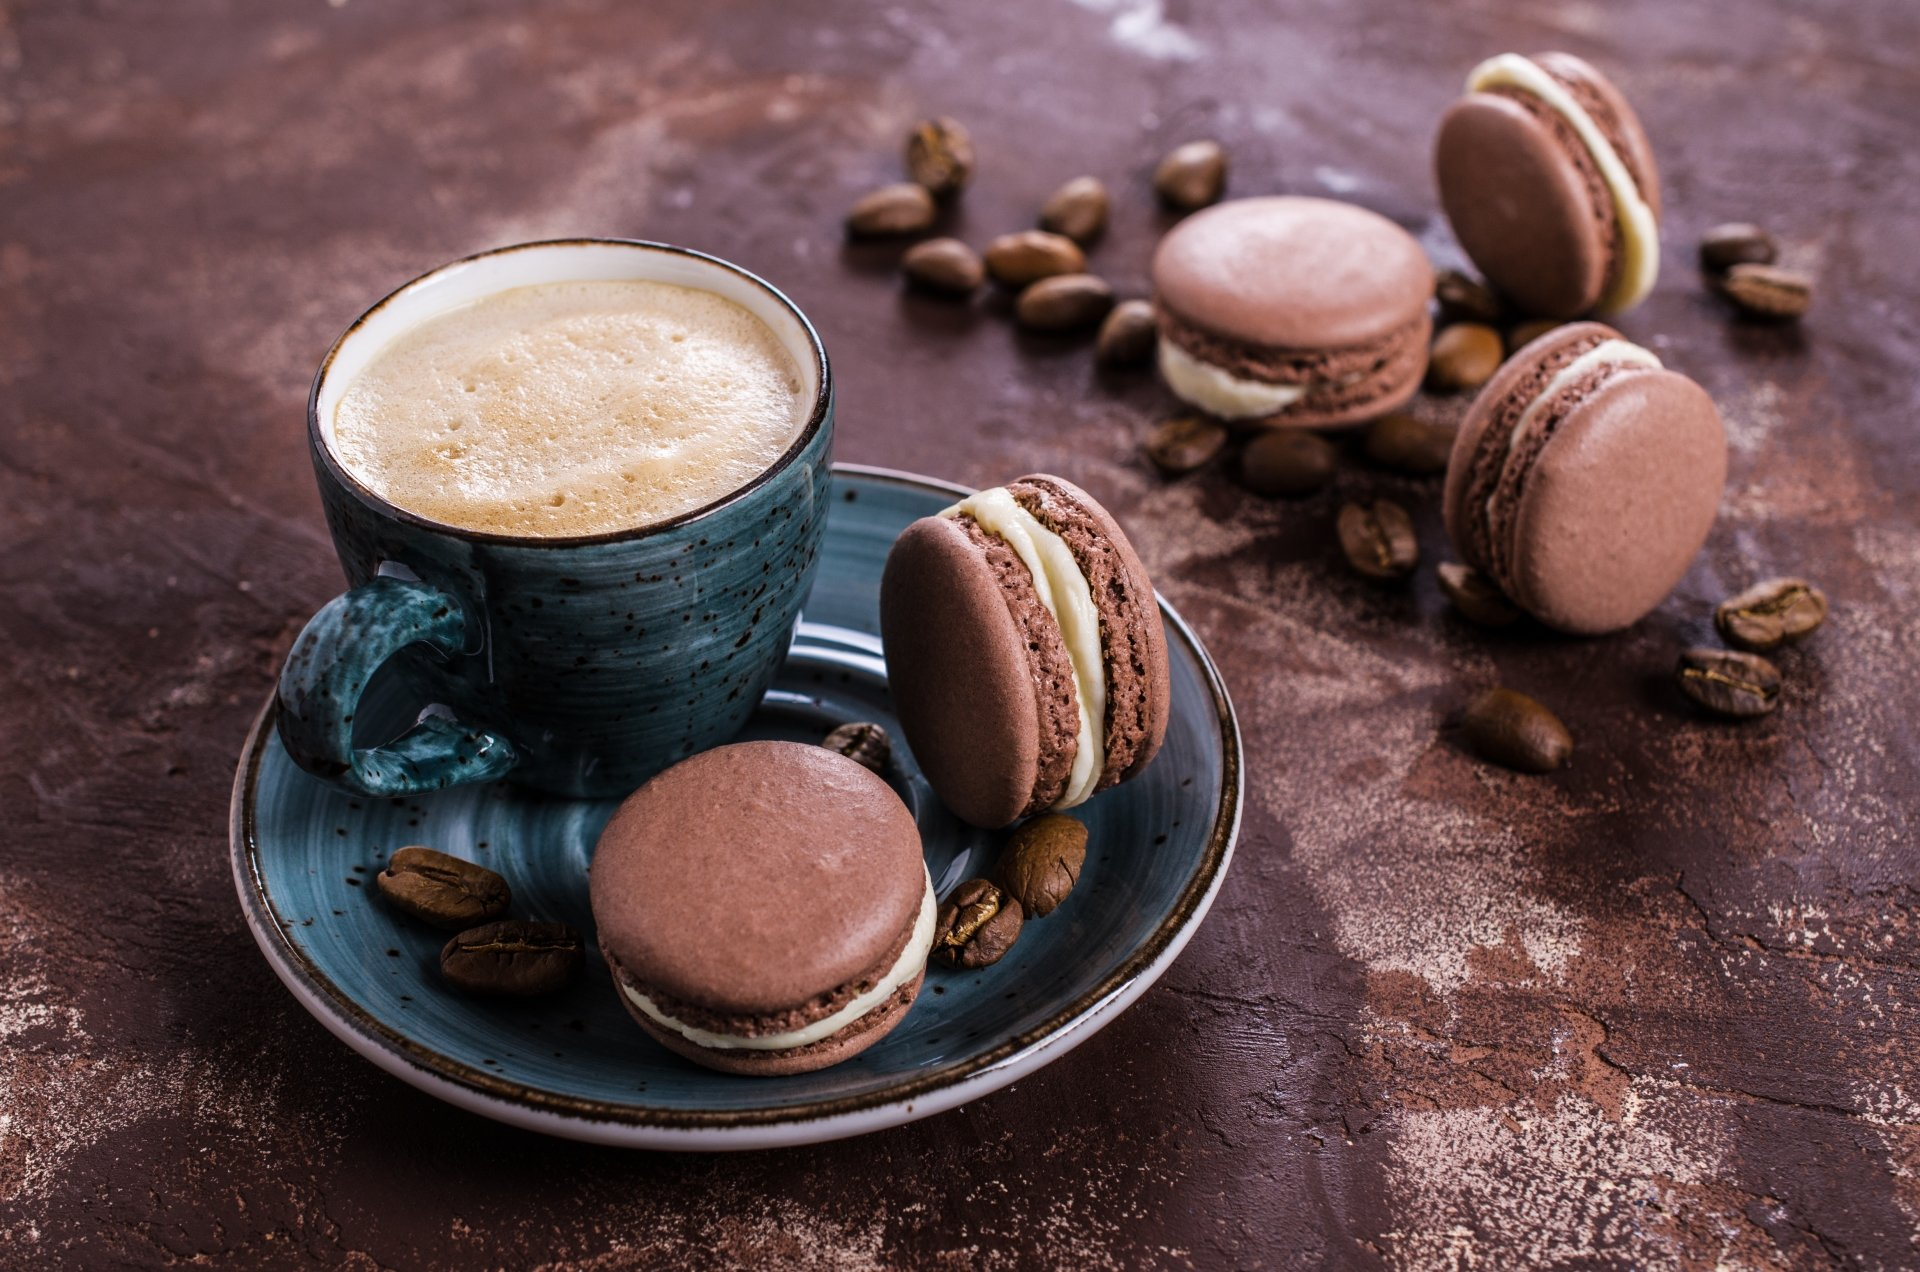 Food - Coffee  Still Life Macaron Coffee Beans Wallpaper